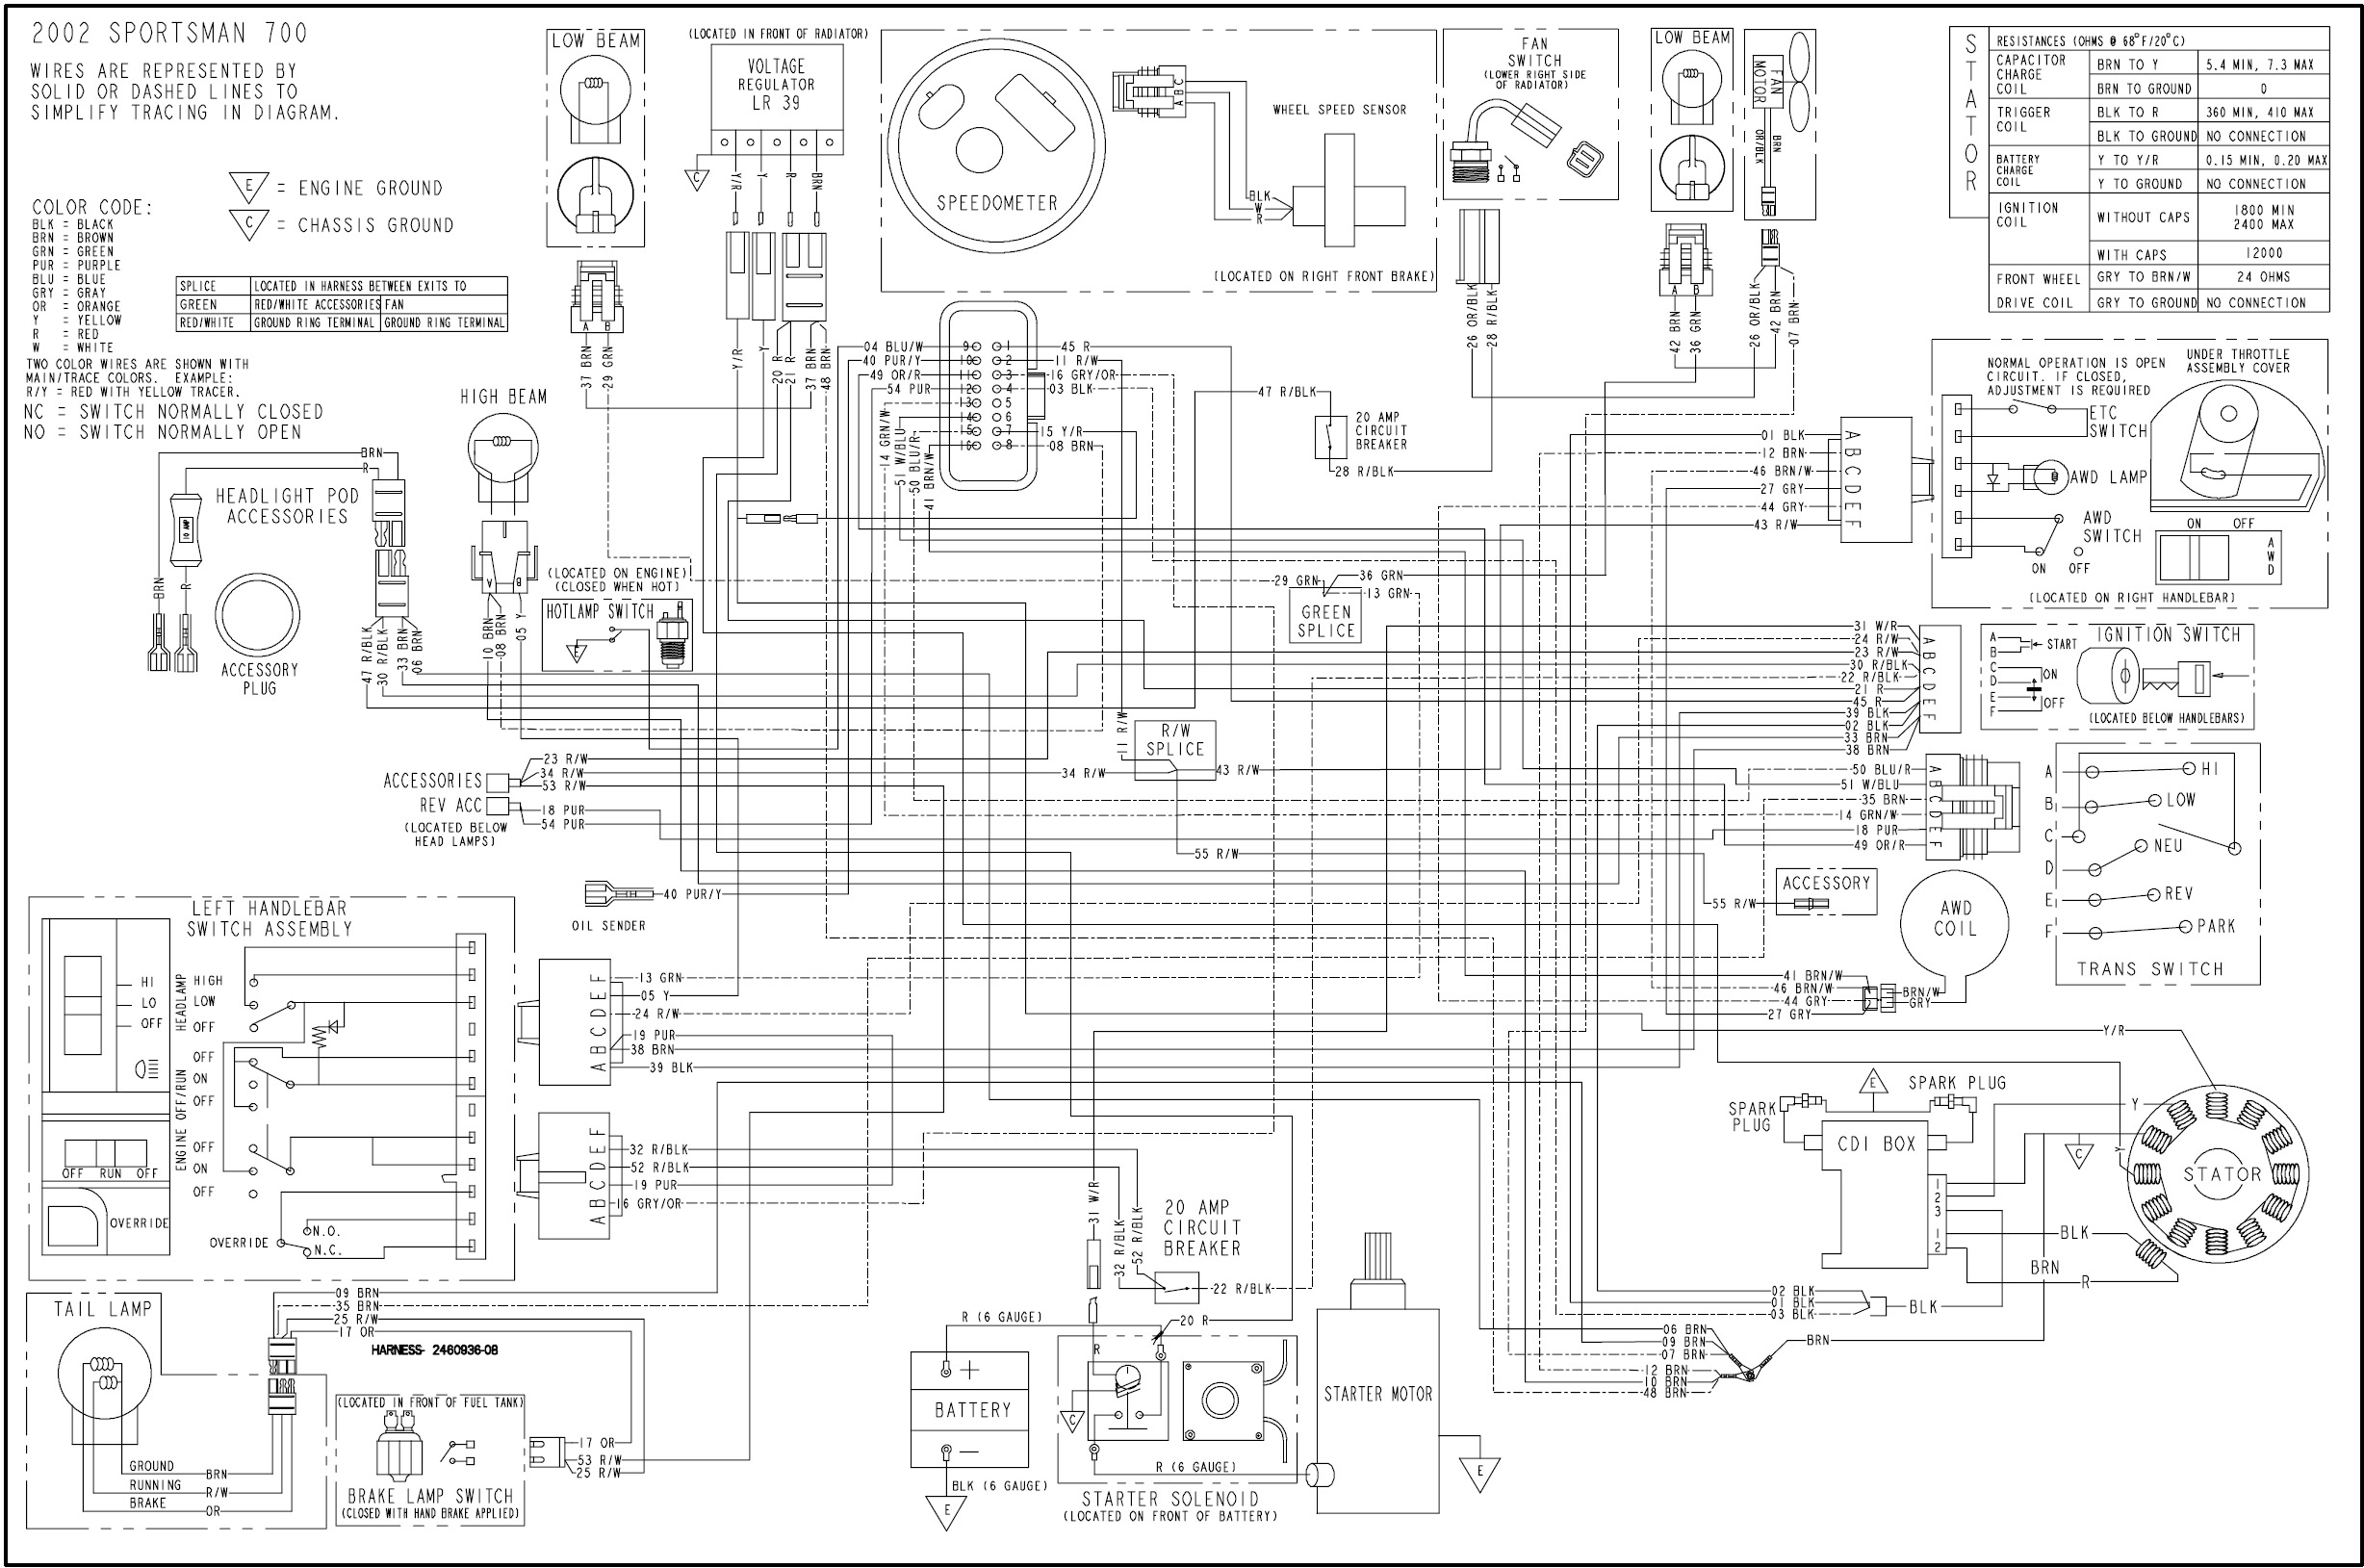 2004 Polaris Sportsman 700 Ignition Wiring Diagram Great Design Of Mercedes Switch Plug 1975 To 1995 Benz 2001 Twin No Start Atv Forum 450 2002